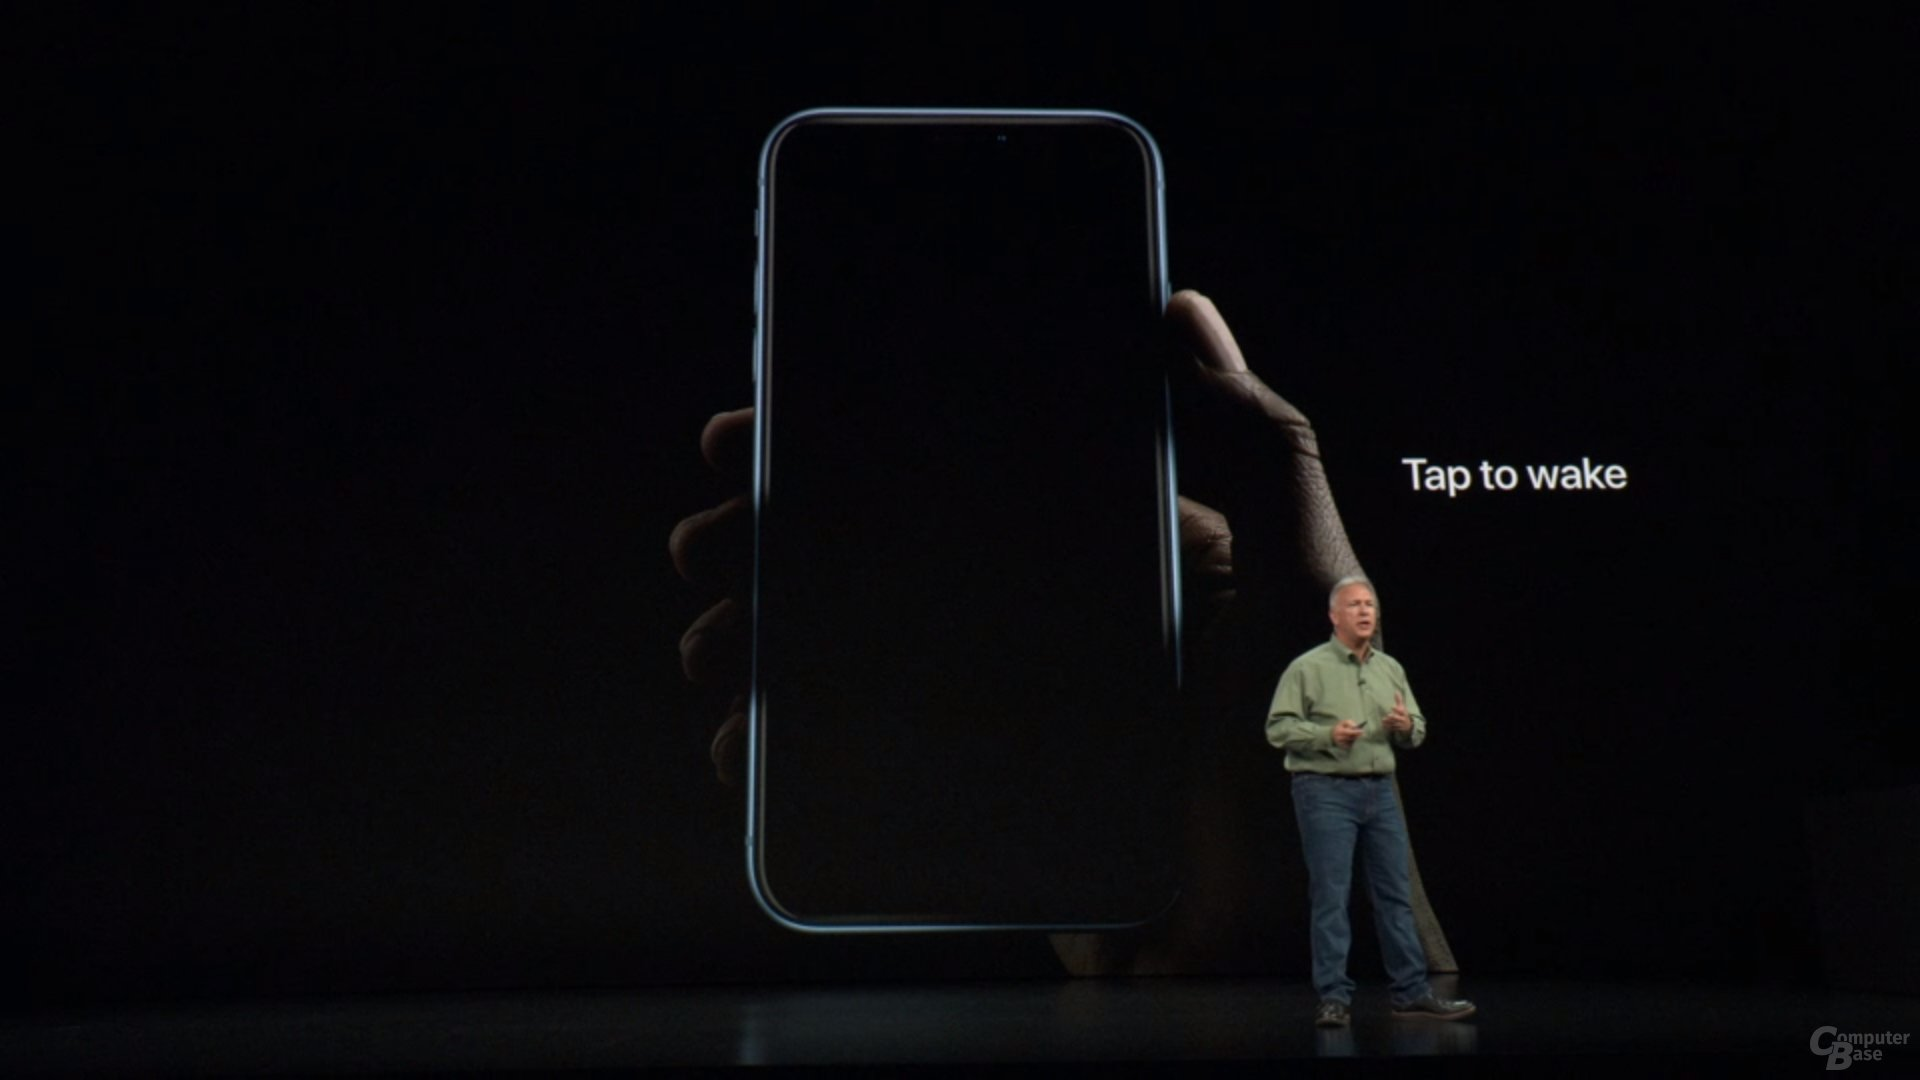 Apple iPhone Xr – Tap to Wake